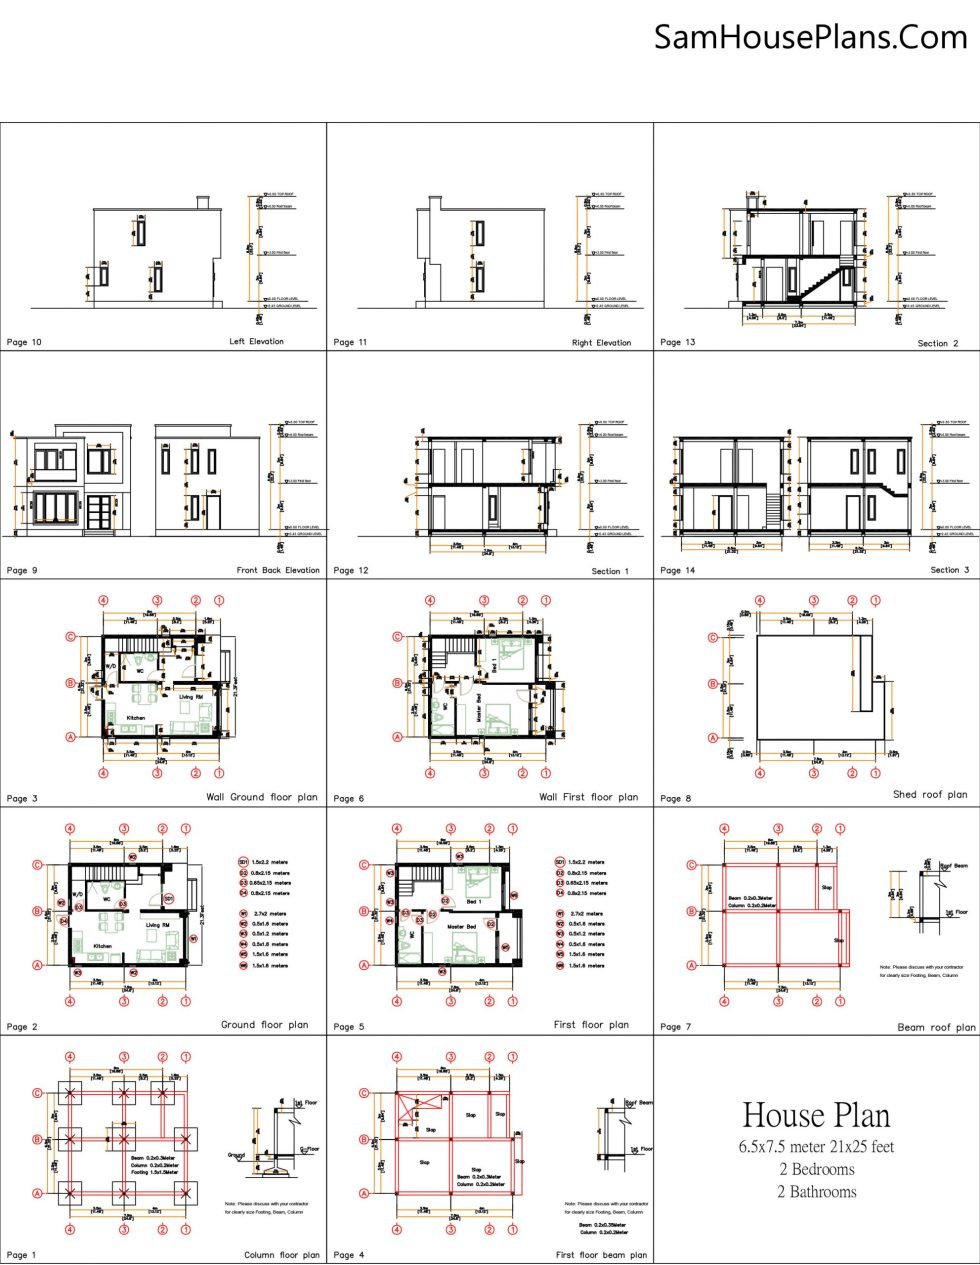 House Plans 6.5x7.5M with 2 Bedrooms roof